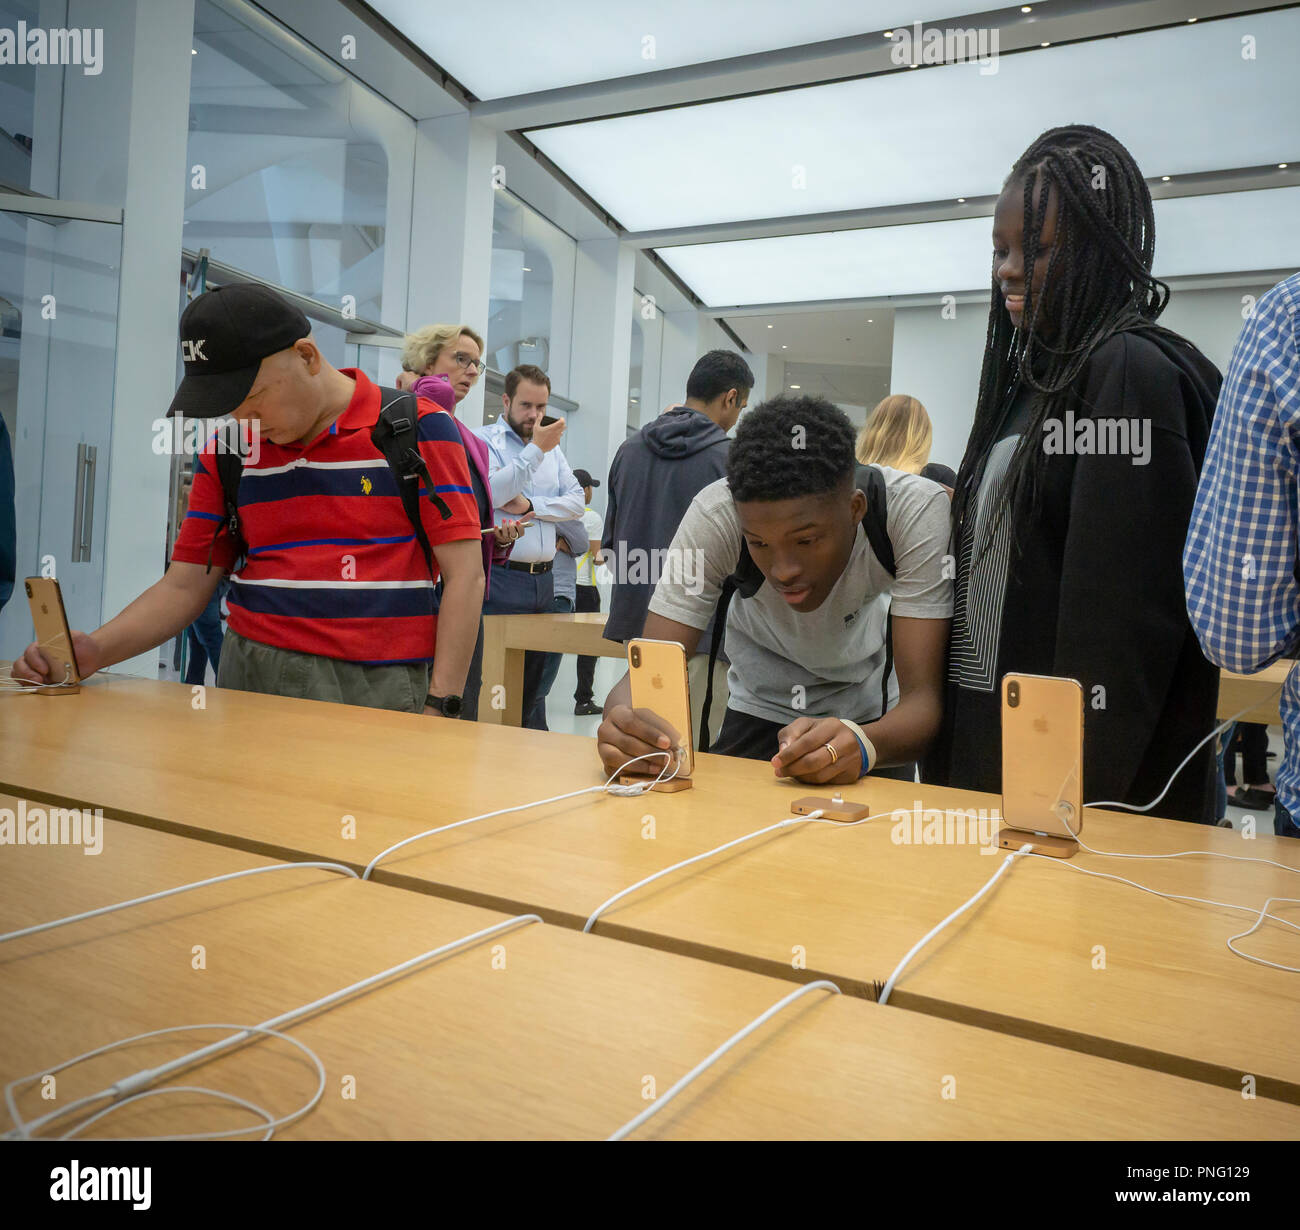 New York, USA. 21st September 2018. Customers in the Apple store in the WTC Transportation Hub in New York try out the new iPhone XS and XS Max on Friday, September 21, 2018, the first day they went on sale.  The new phones, anxiously awaited by drooling iPhone aficionados, sell for a whopping $999 for the XS and $1099 for the XS Max with the Max having a 6.5 inch display.  (© Richard B. Levine) Credit: Richard Levine/Alamy Live News Credit: Richard Levine/Alamy Live News Stock Photo